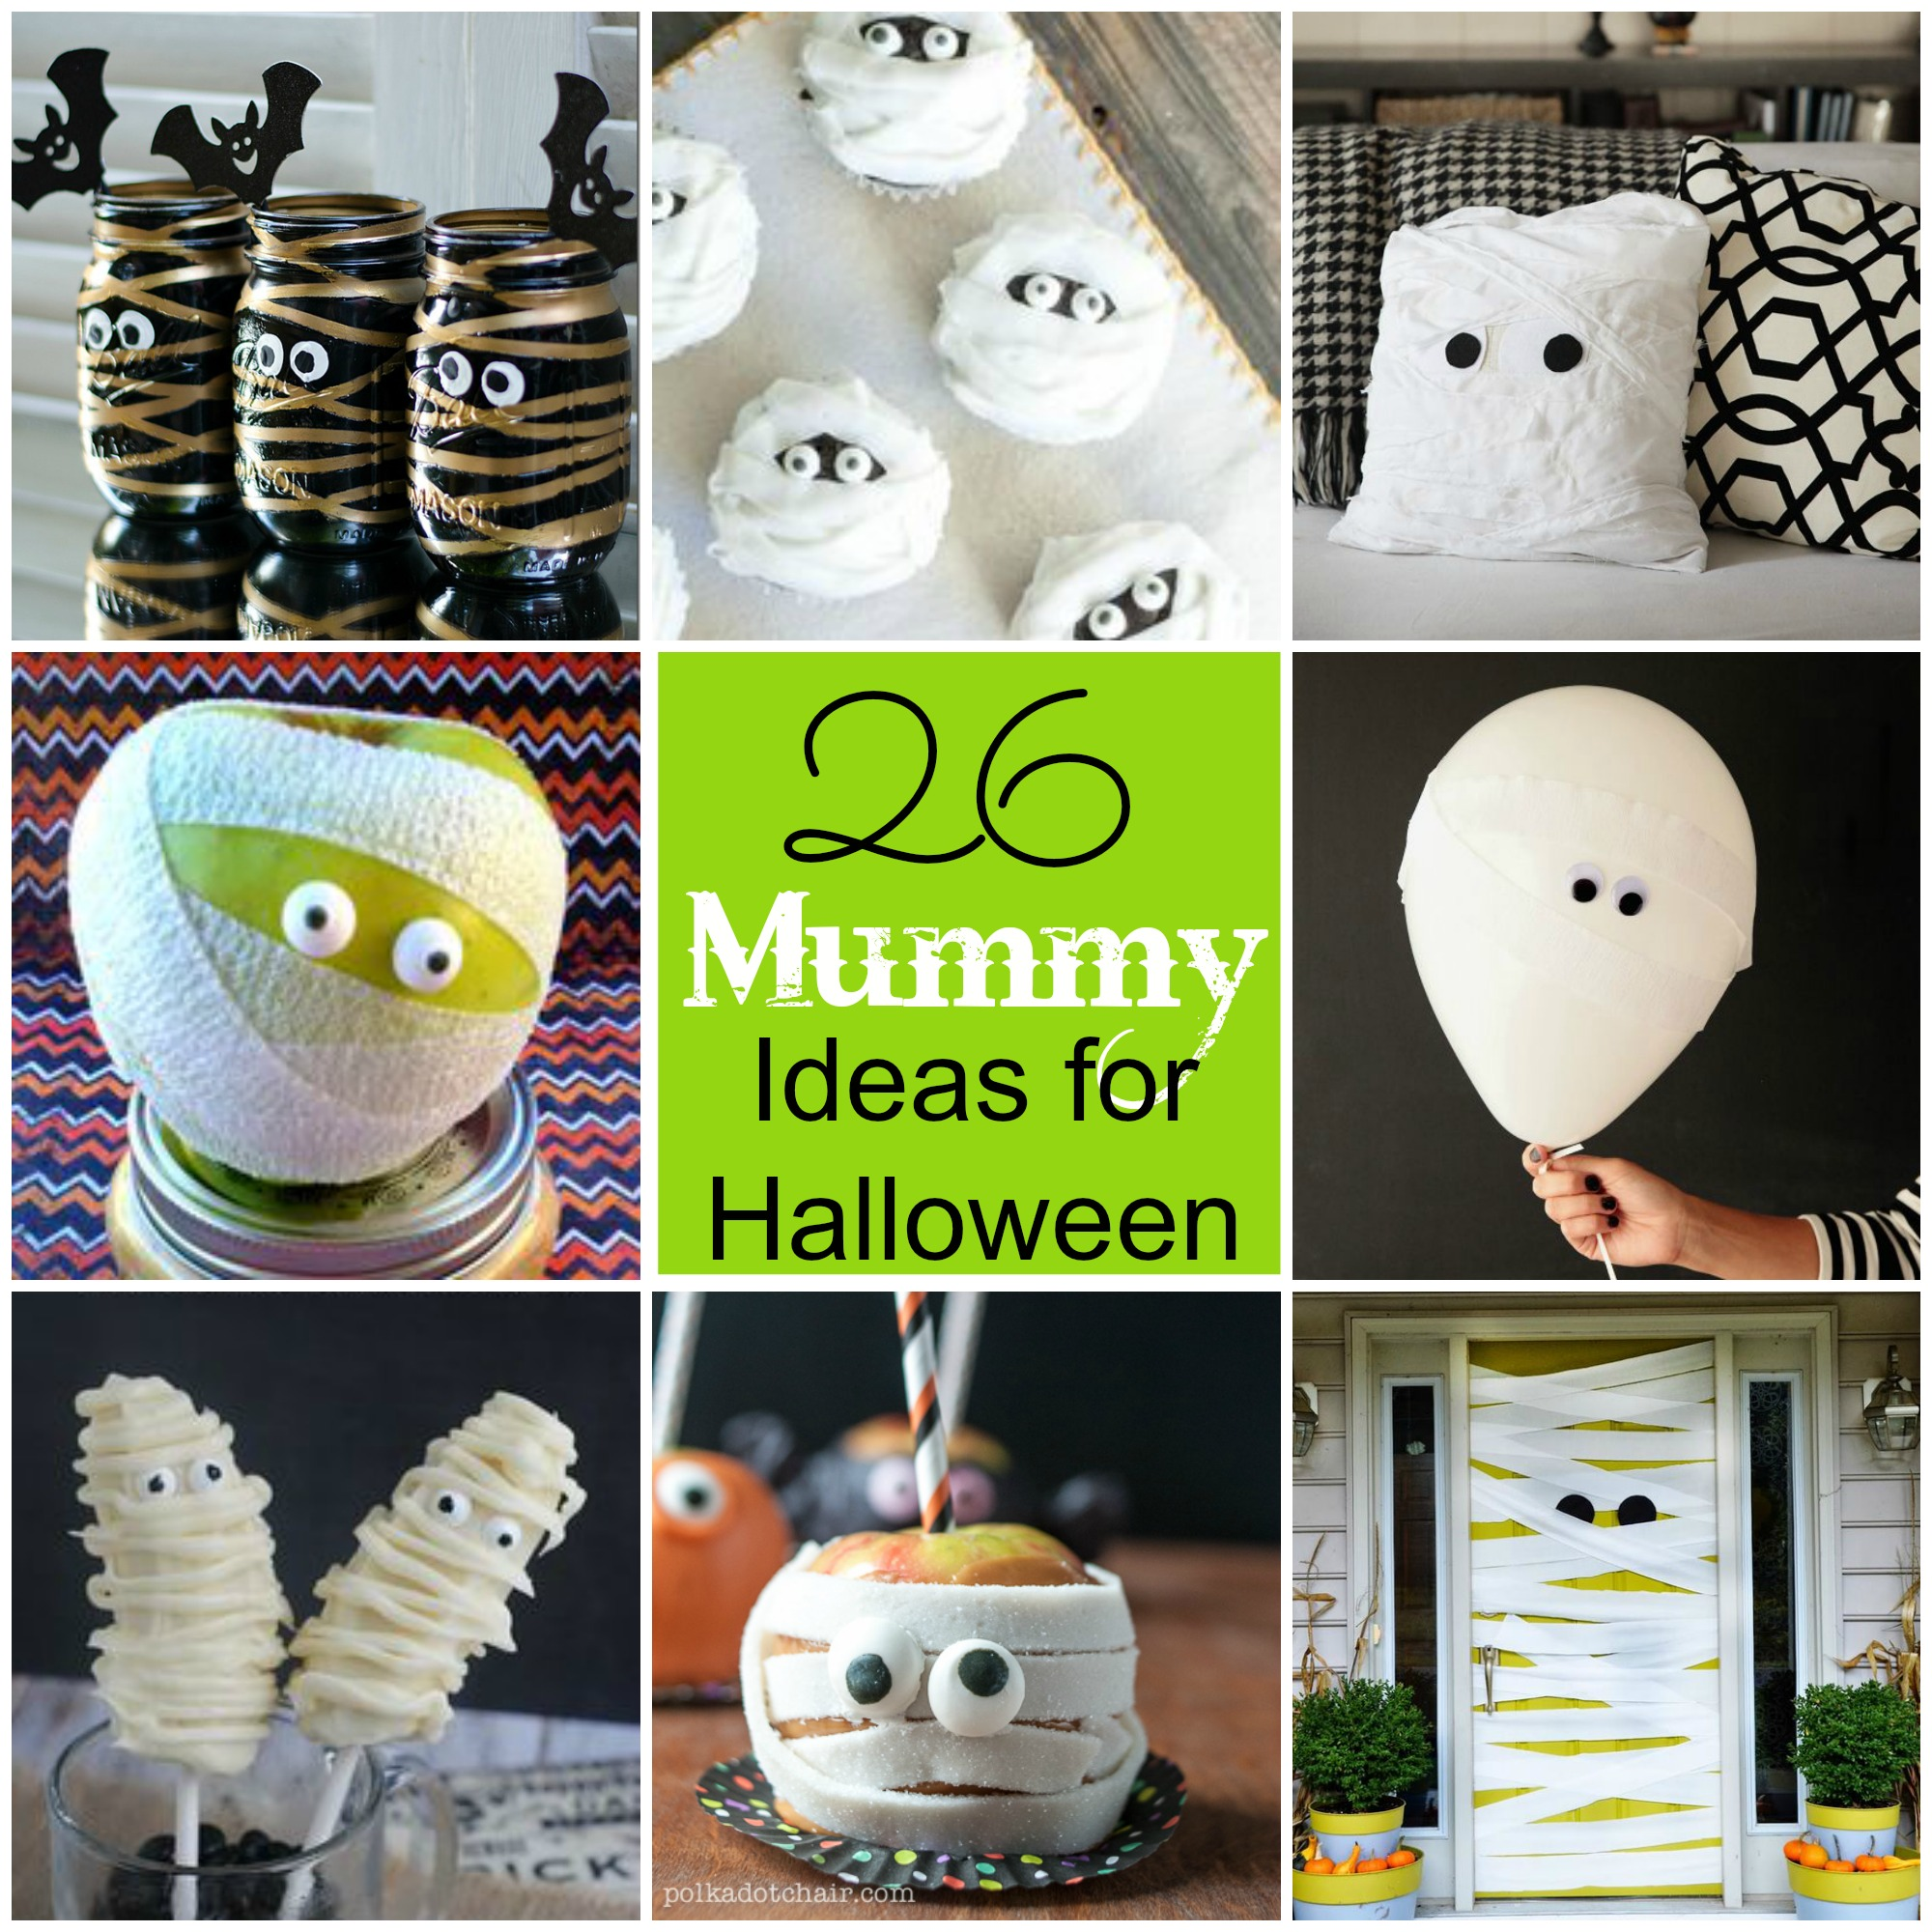 26 Mummy Ideas For Halloween